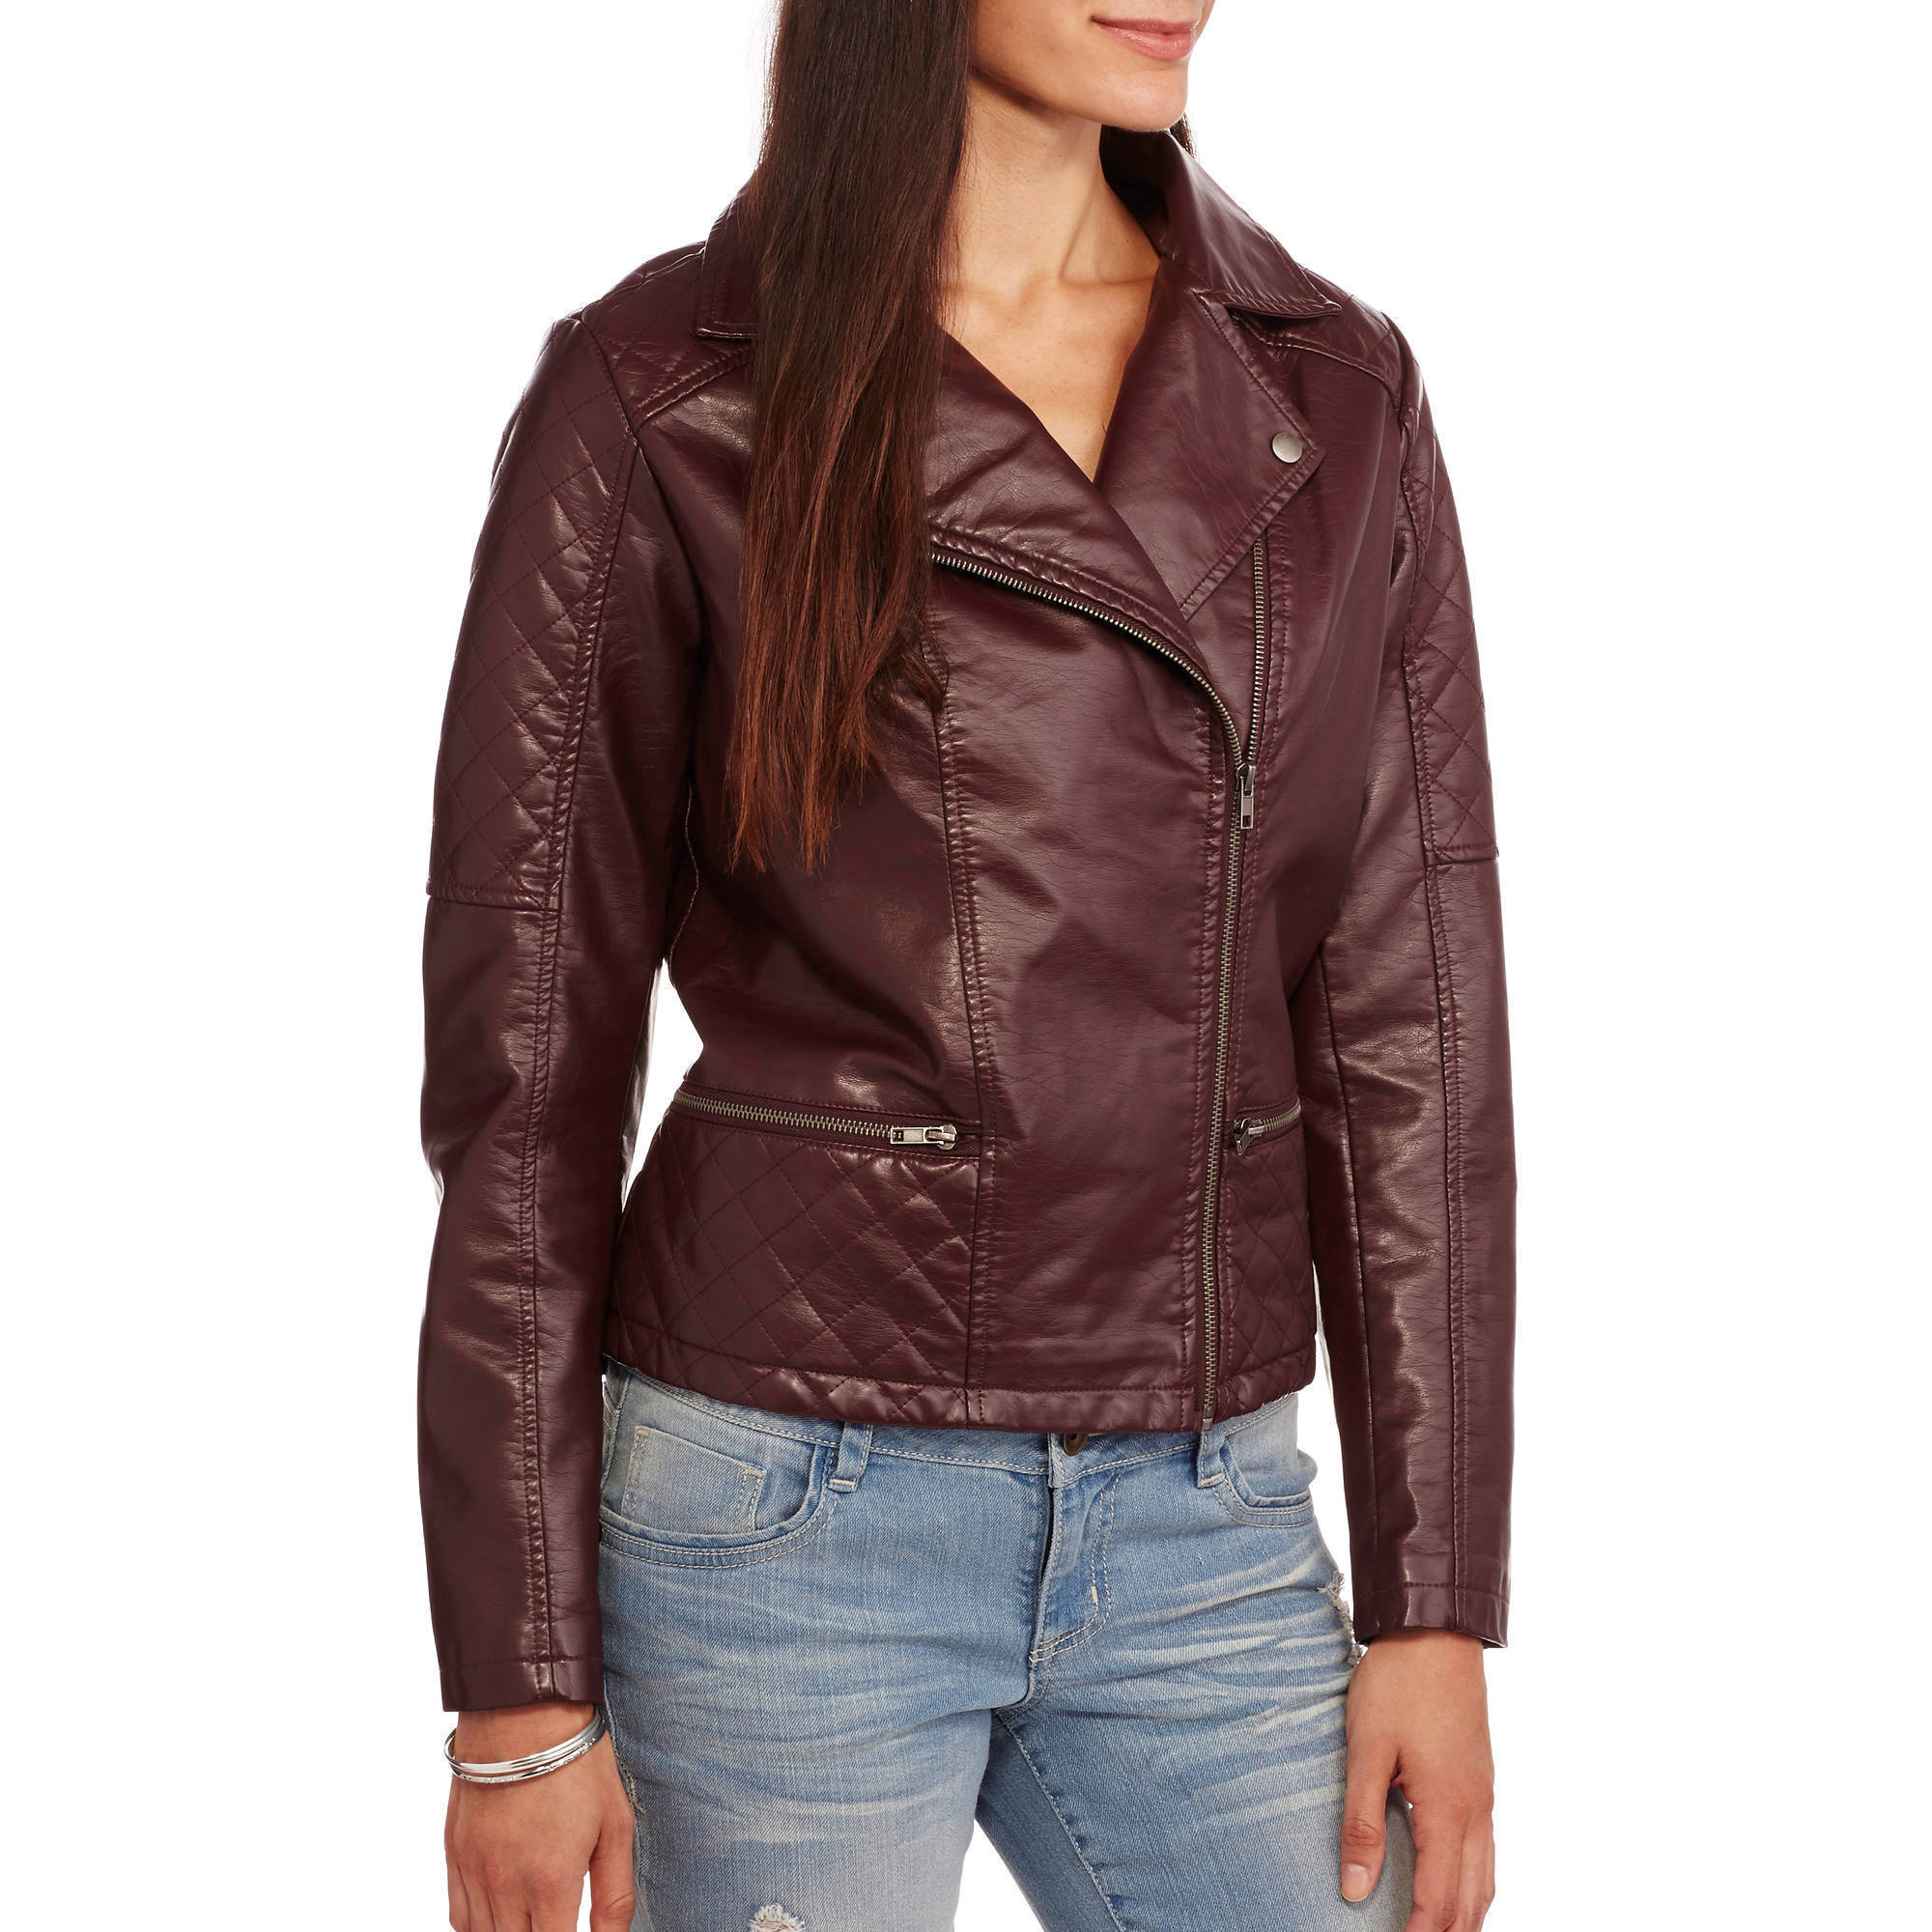 Maxwell Studio Women's Faux Leather Moto Jacket With Removable Fur Collar